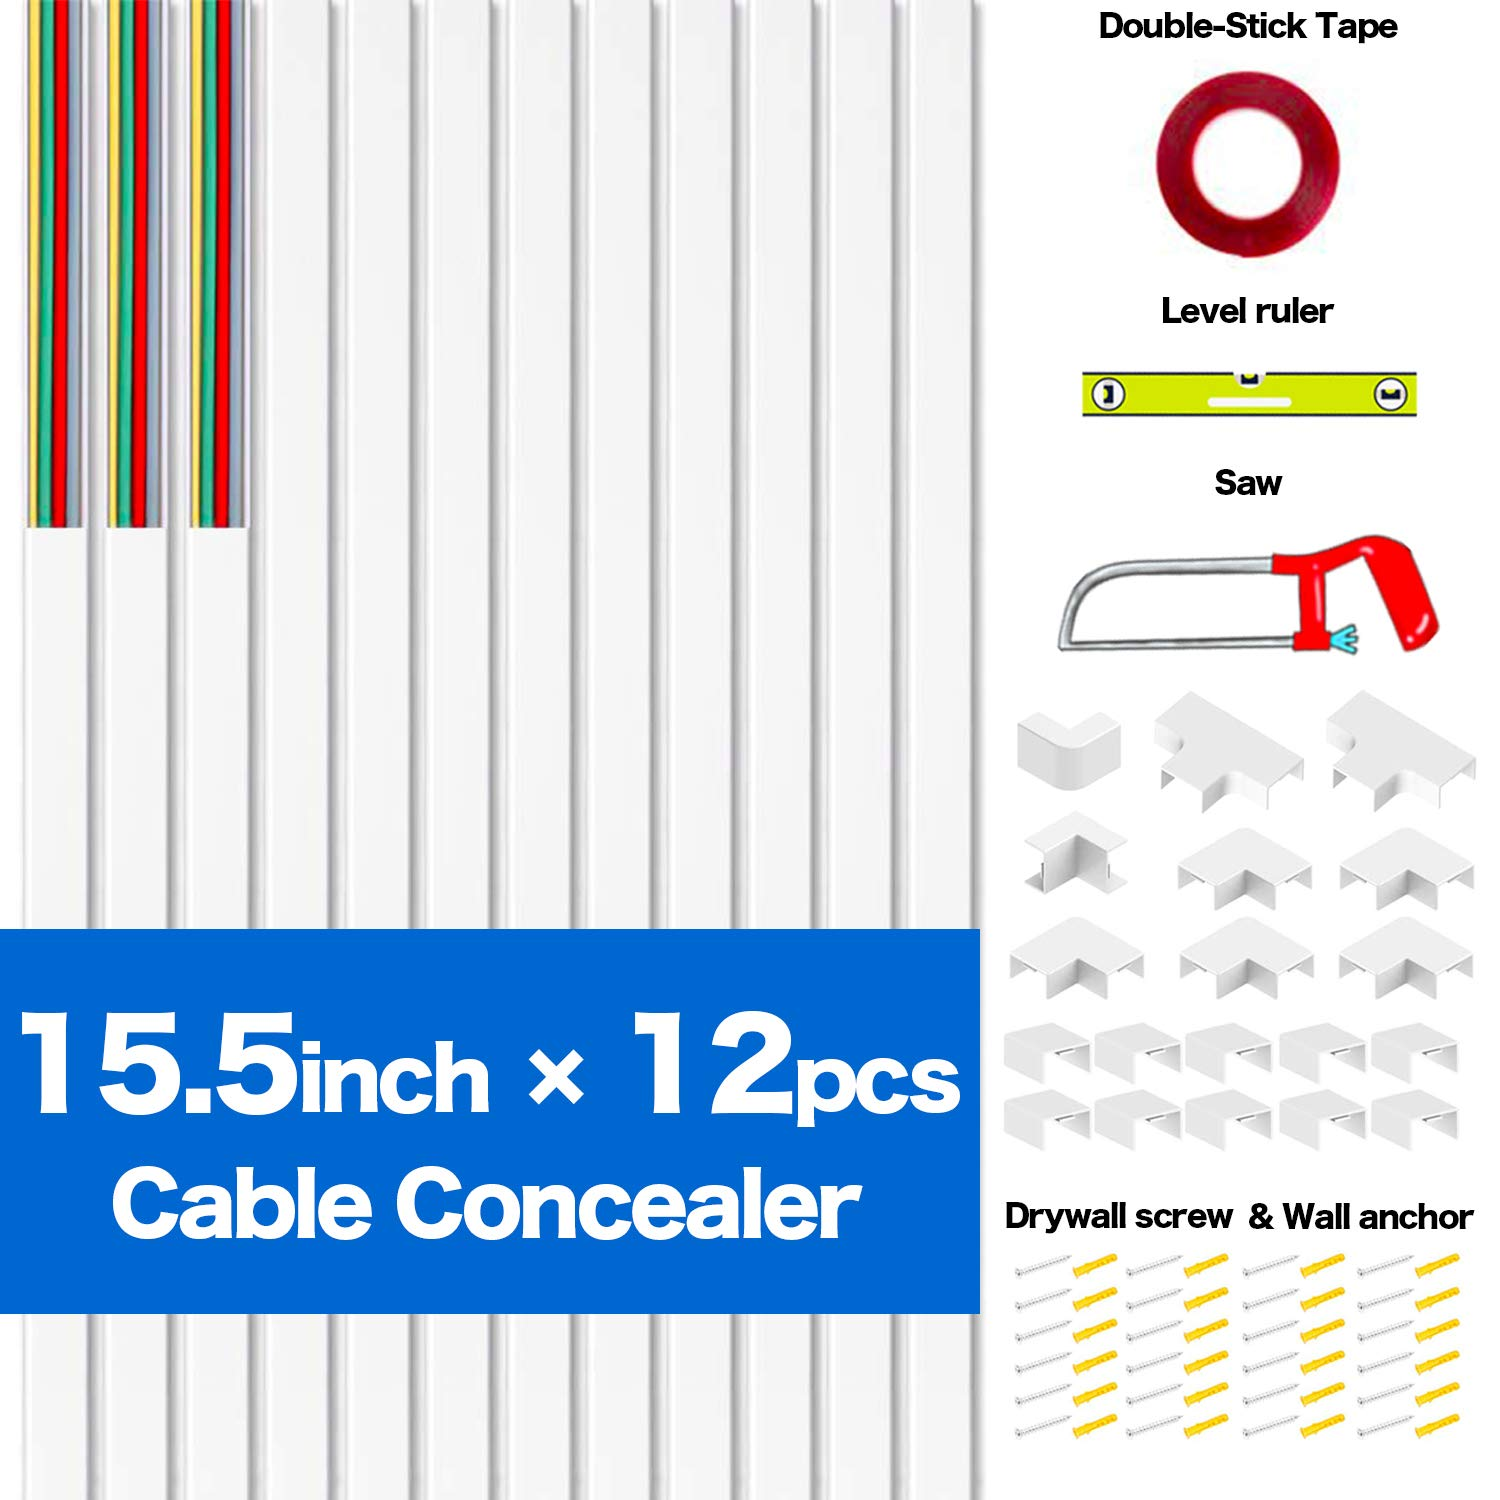 rnairni Cord Cable Concealer, 186 inch Cord Cover Raceway Kit, PVC Wire Cable Management Channel to Hide Single Power Cord,Wall Mount TV Cables - 12X L15.5, W1.18, H0.59